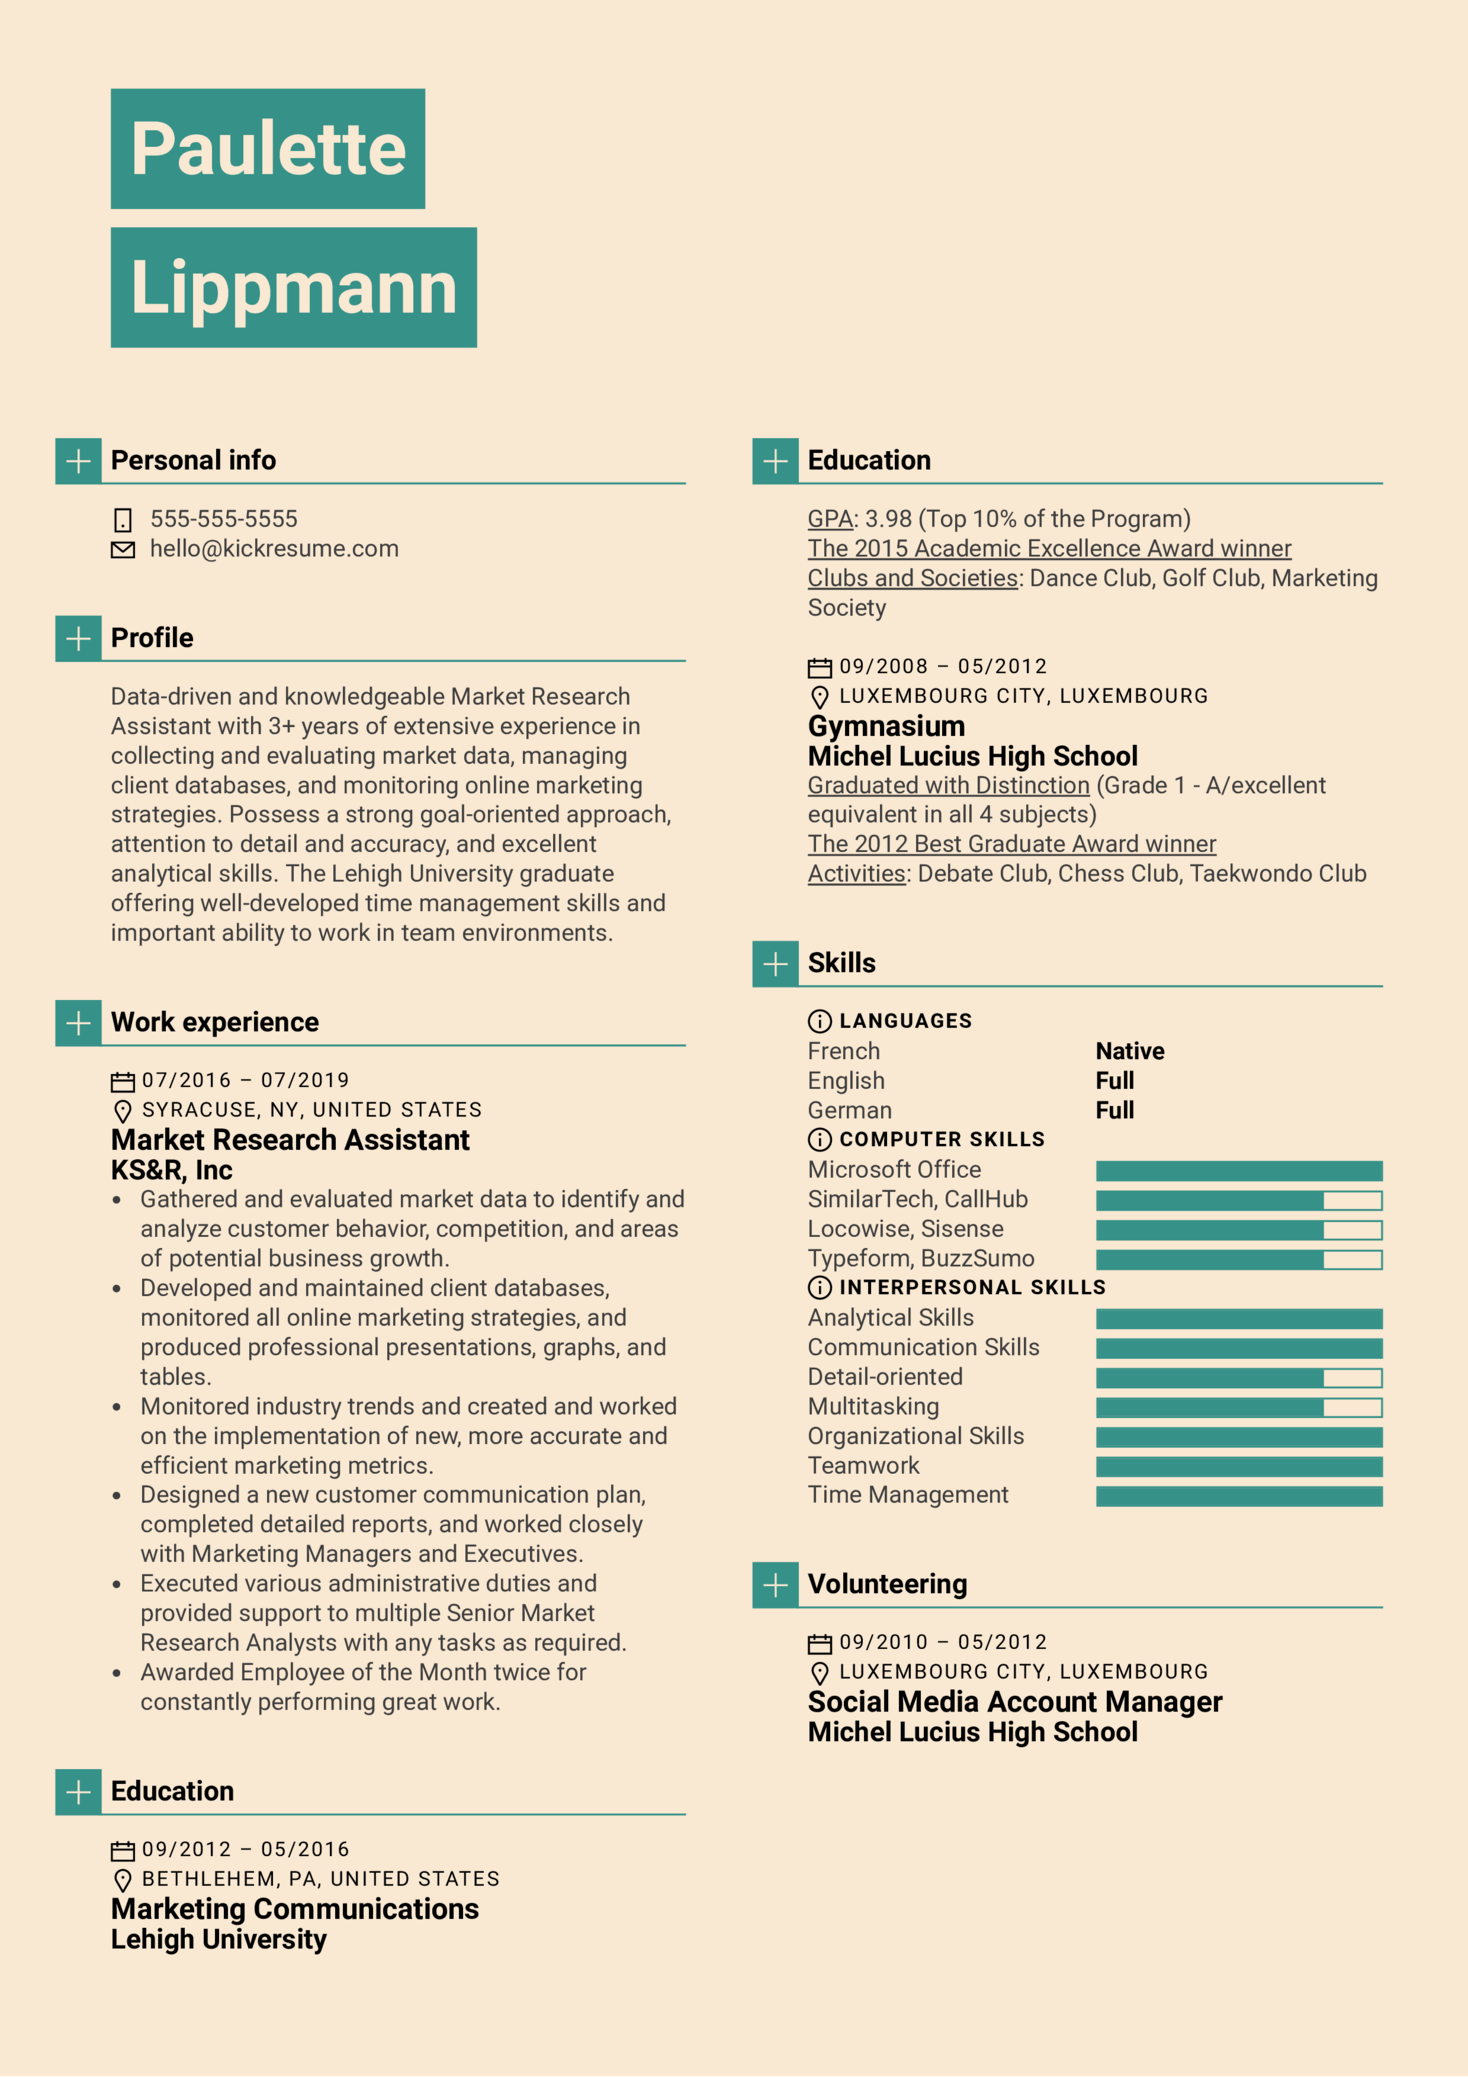 Market Research Assistant Resume Sample (Part 1)